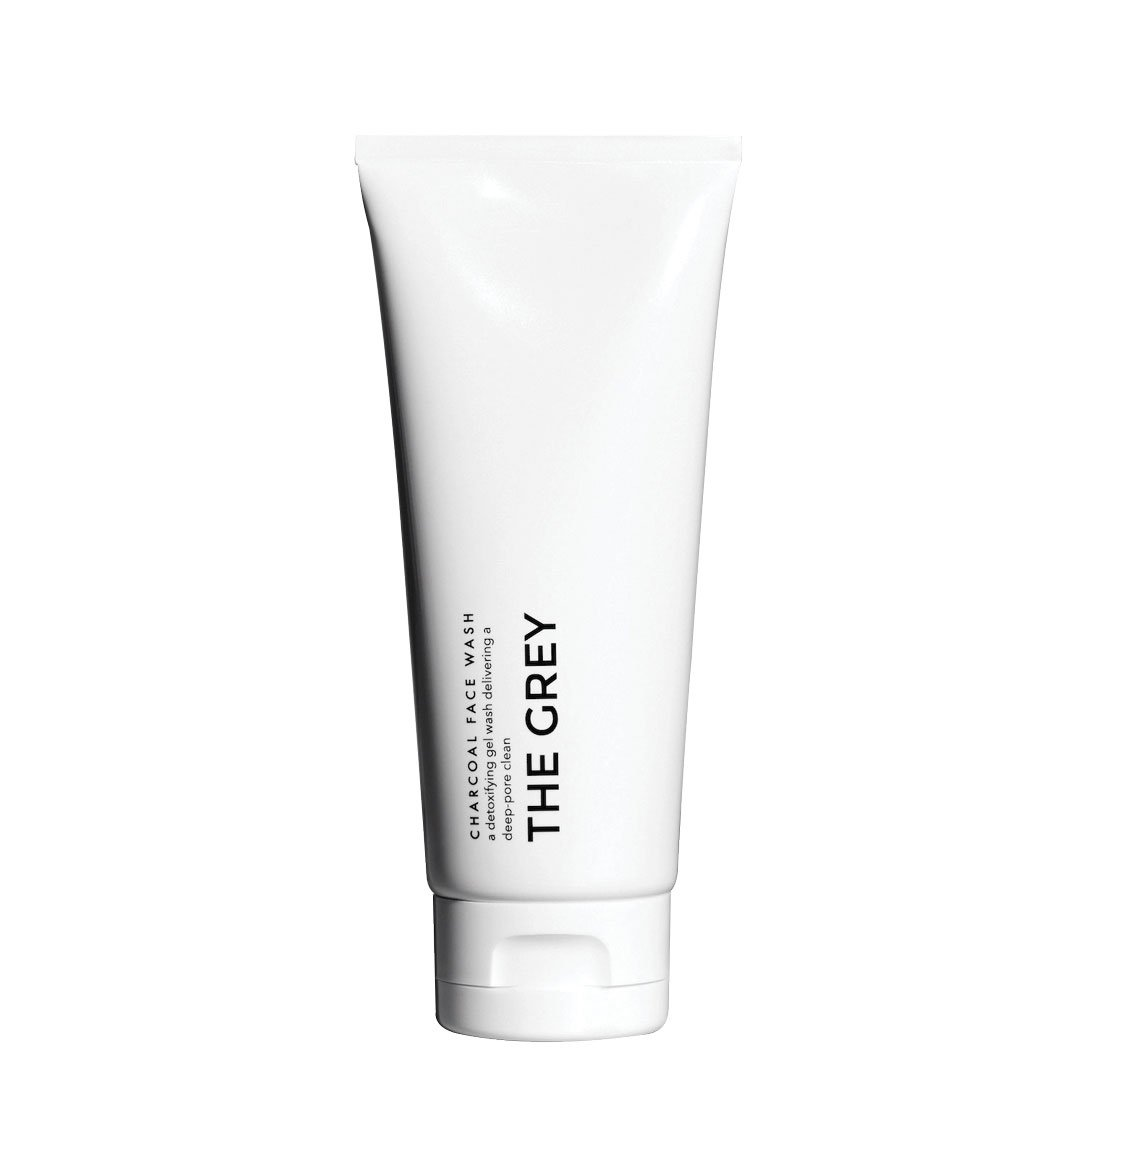 The Grey Charcoal Face Wash 100ml